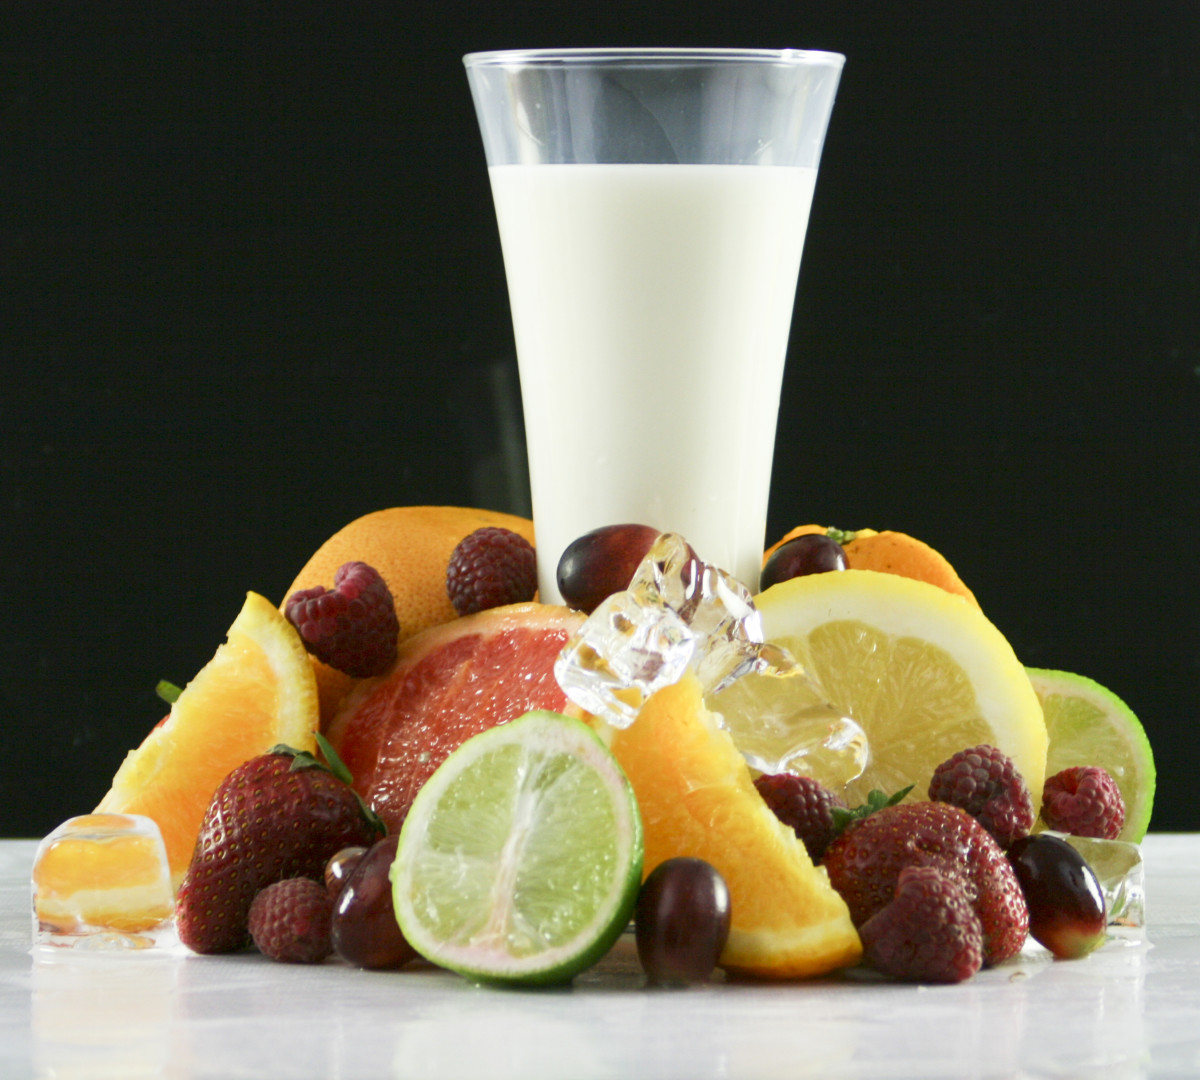 A natural skin softener it may be combined with many different scrub ingredients including  citrus fruits.